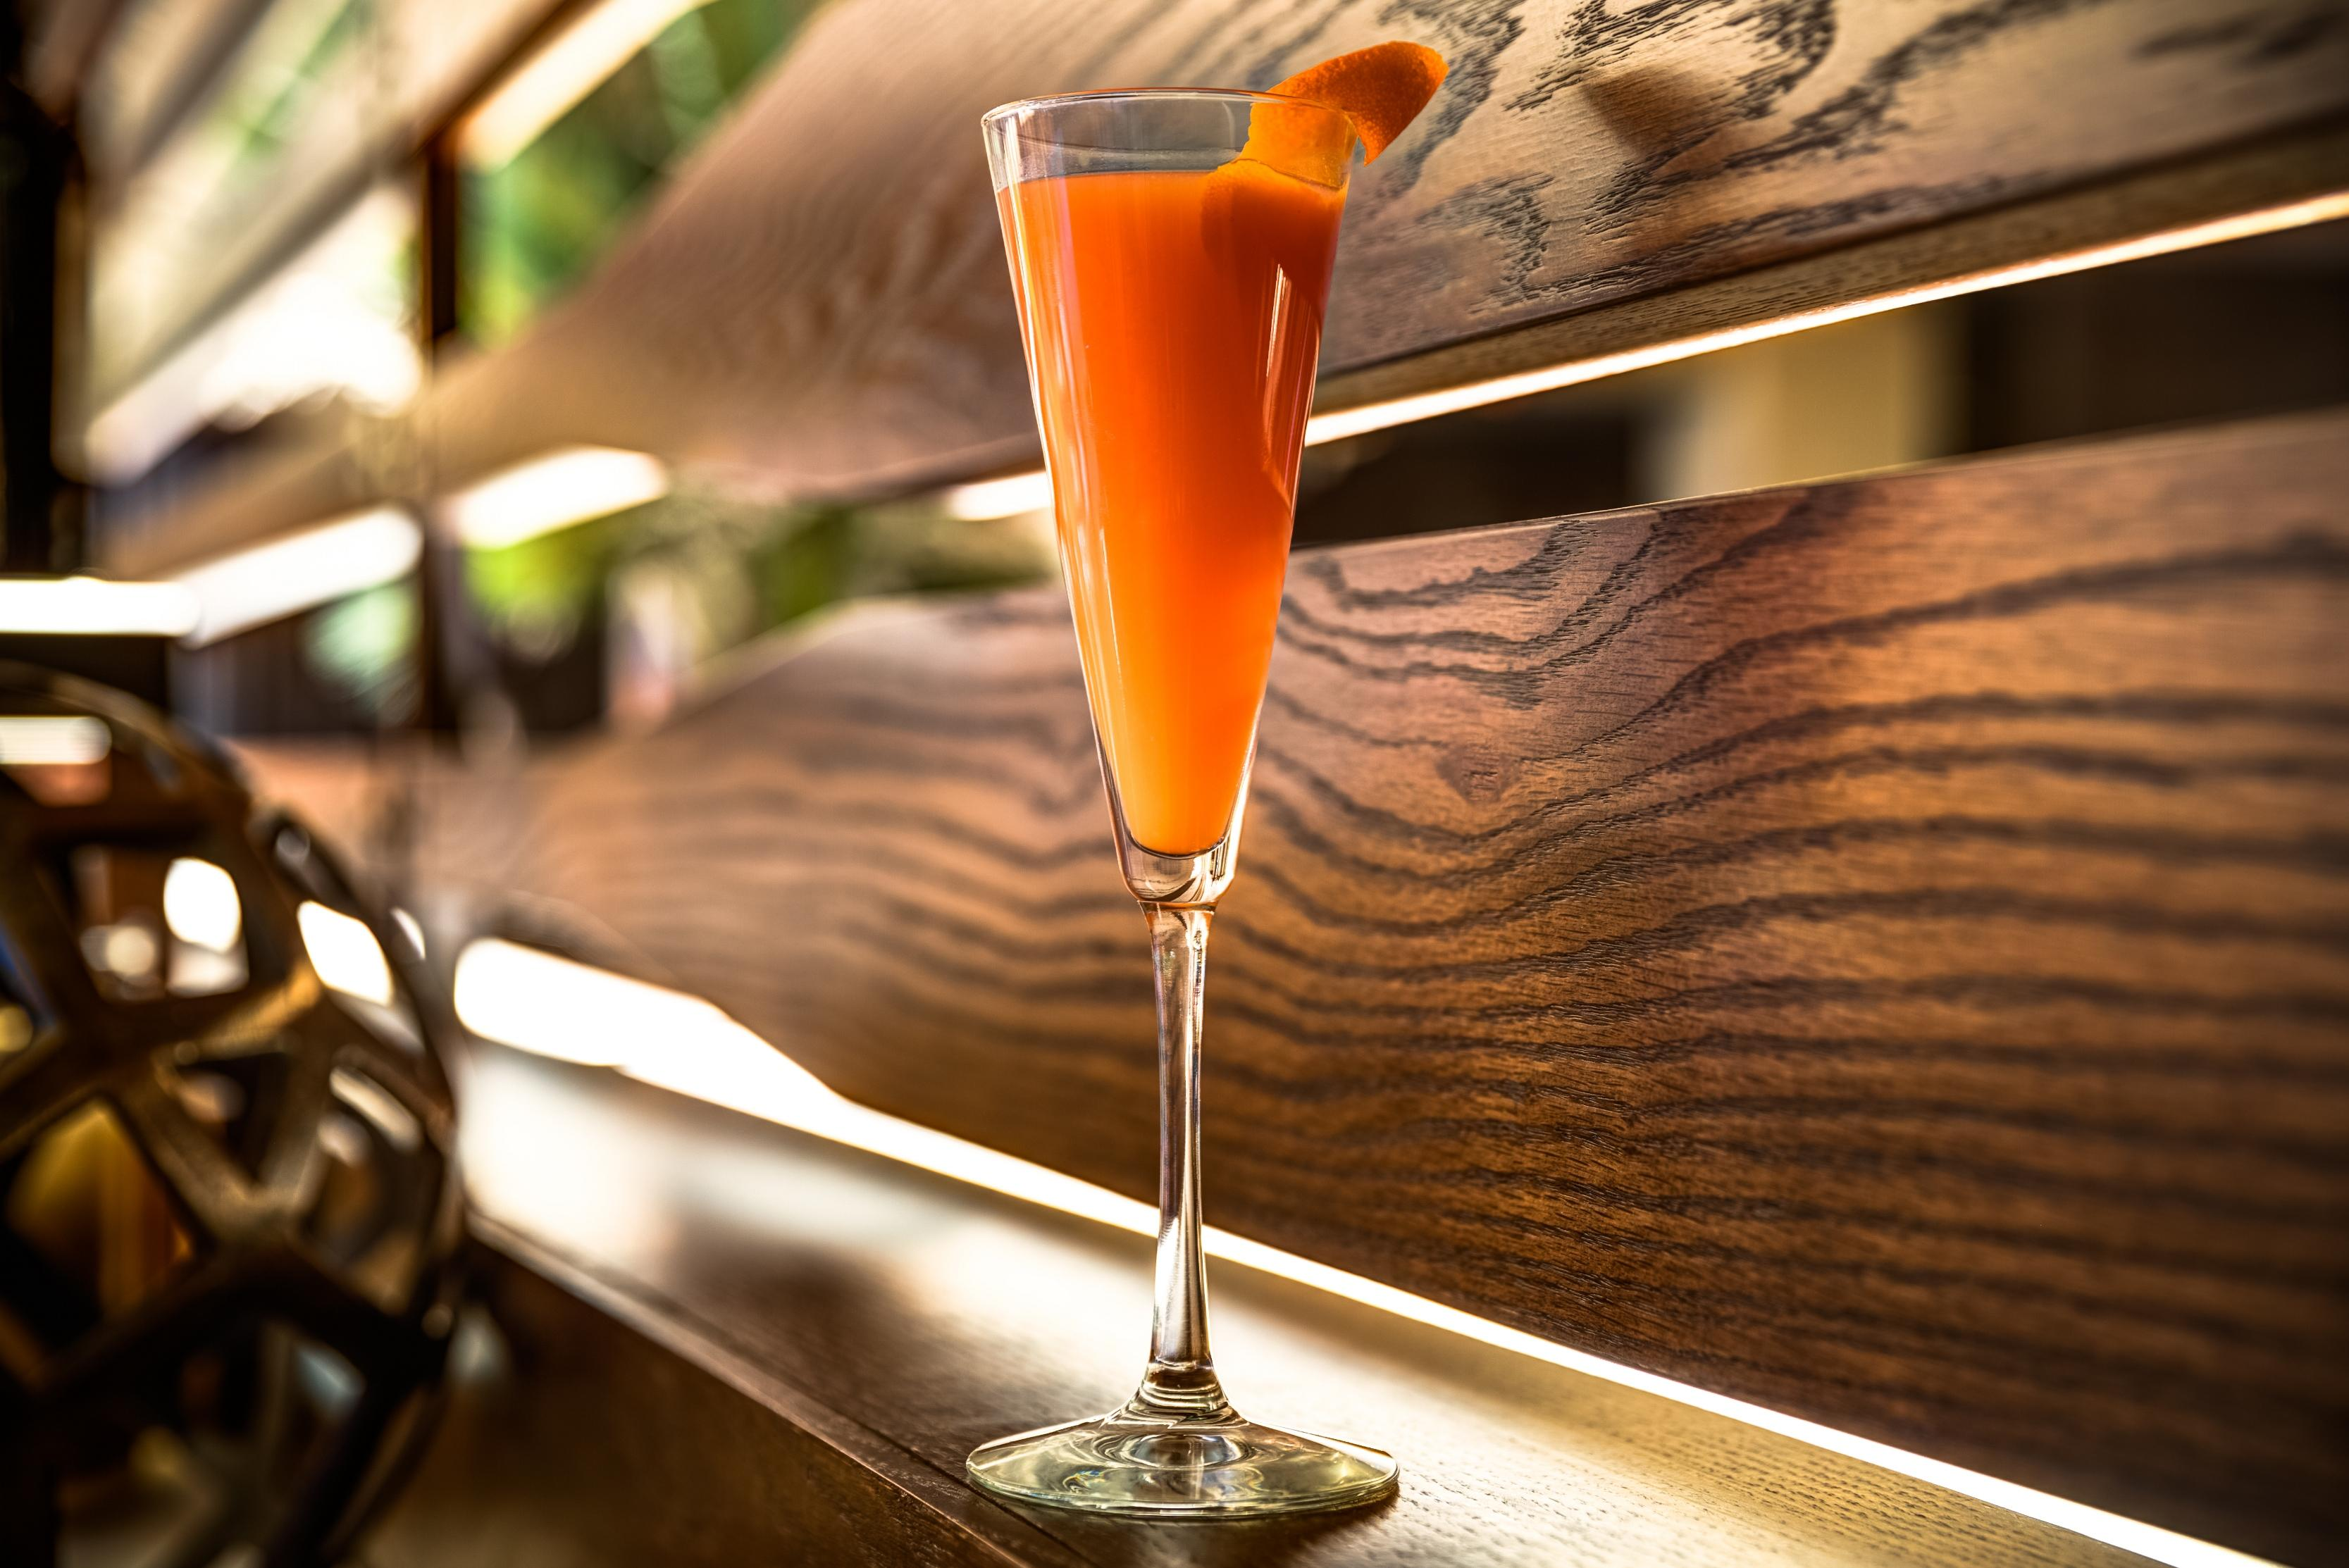 Ocean Prime's Blood Orange Mimosa. (Image courtesy of Ocean Prime)